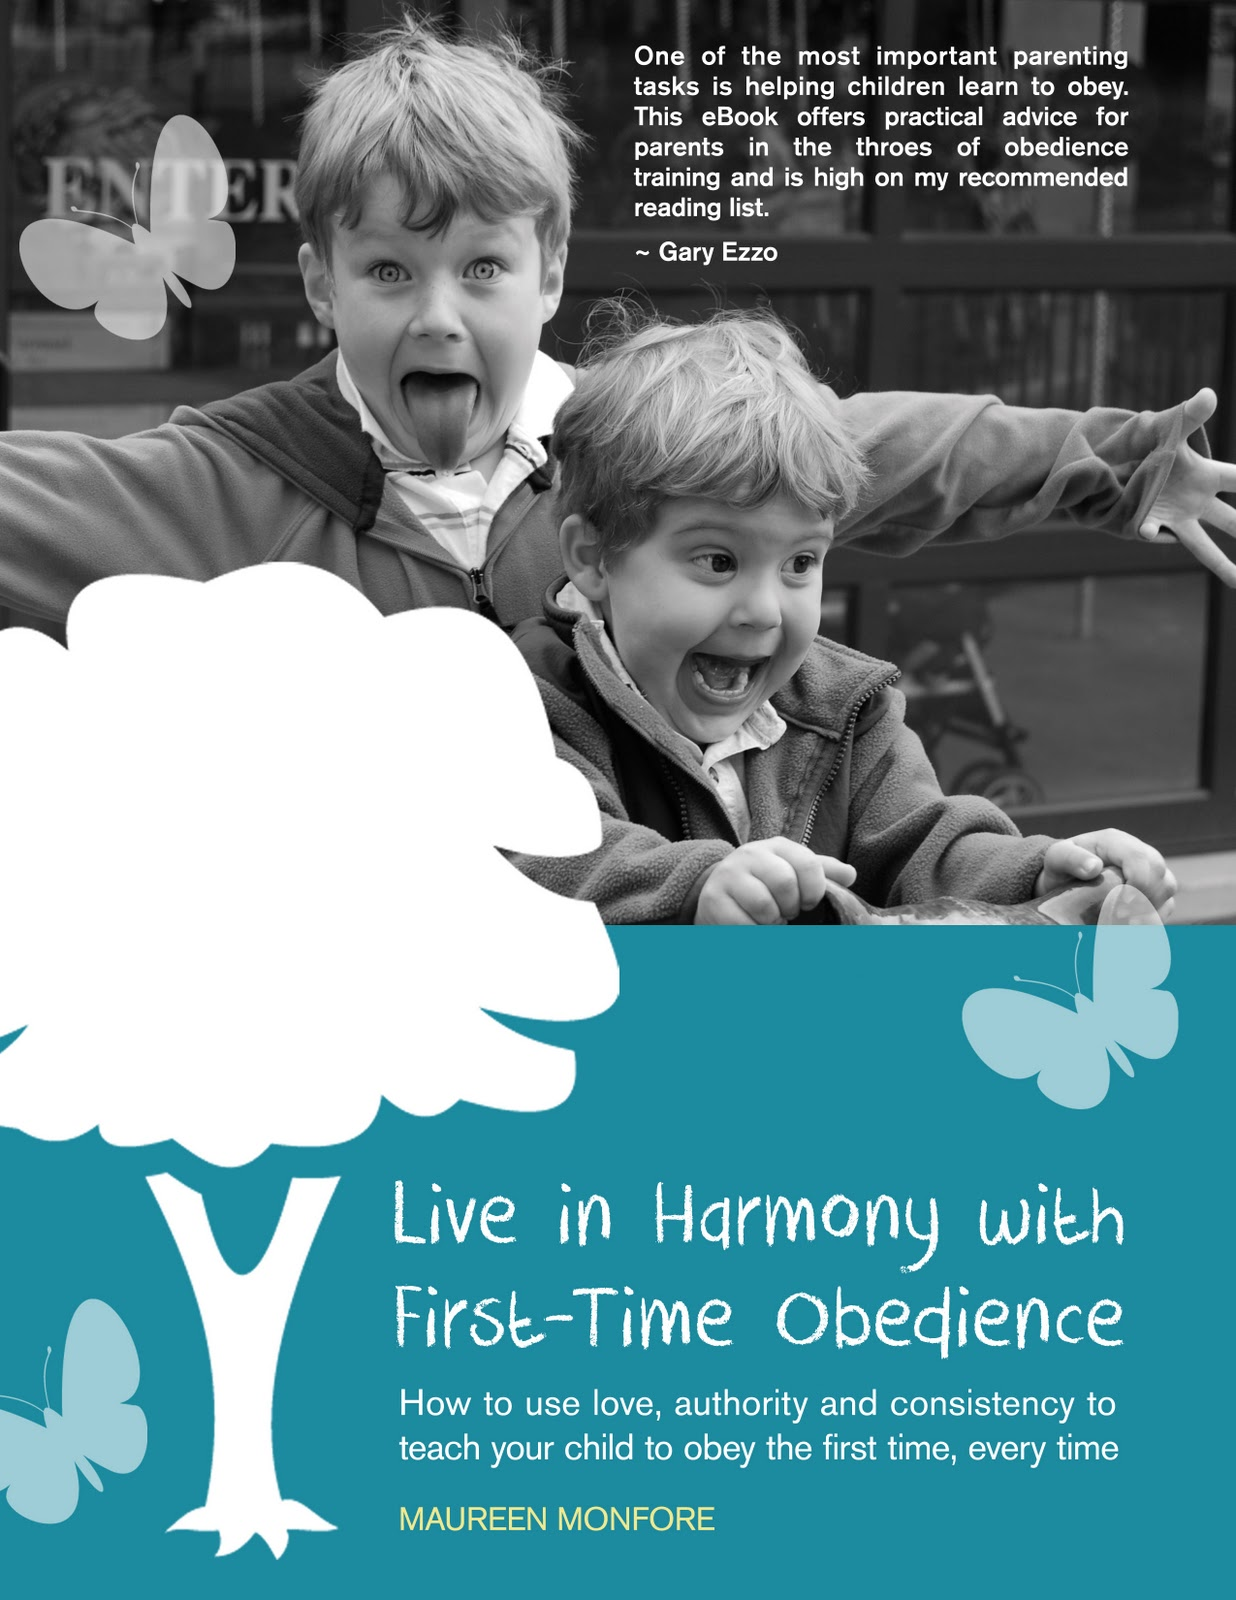 Teaching Obedience to a Child with Special Needs